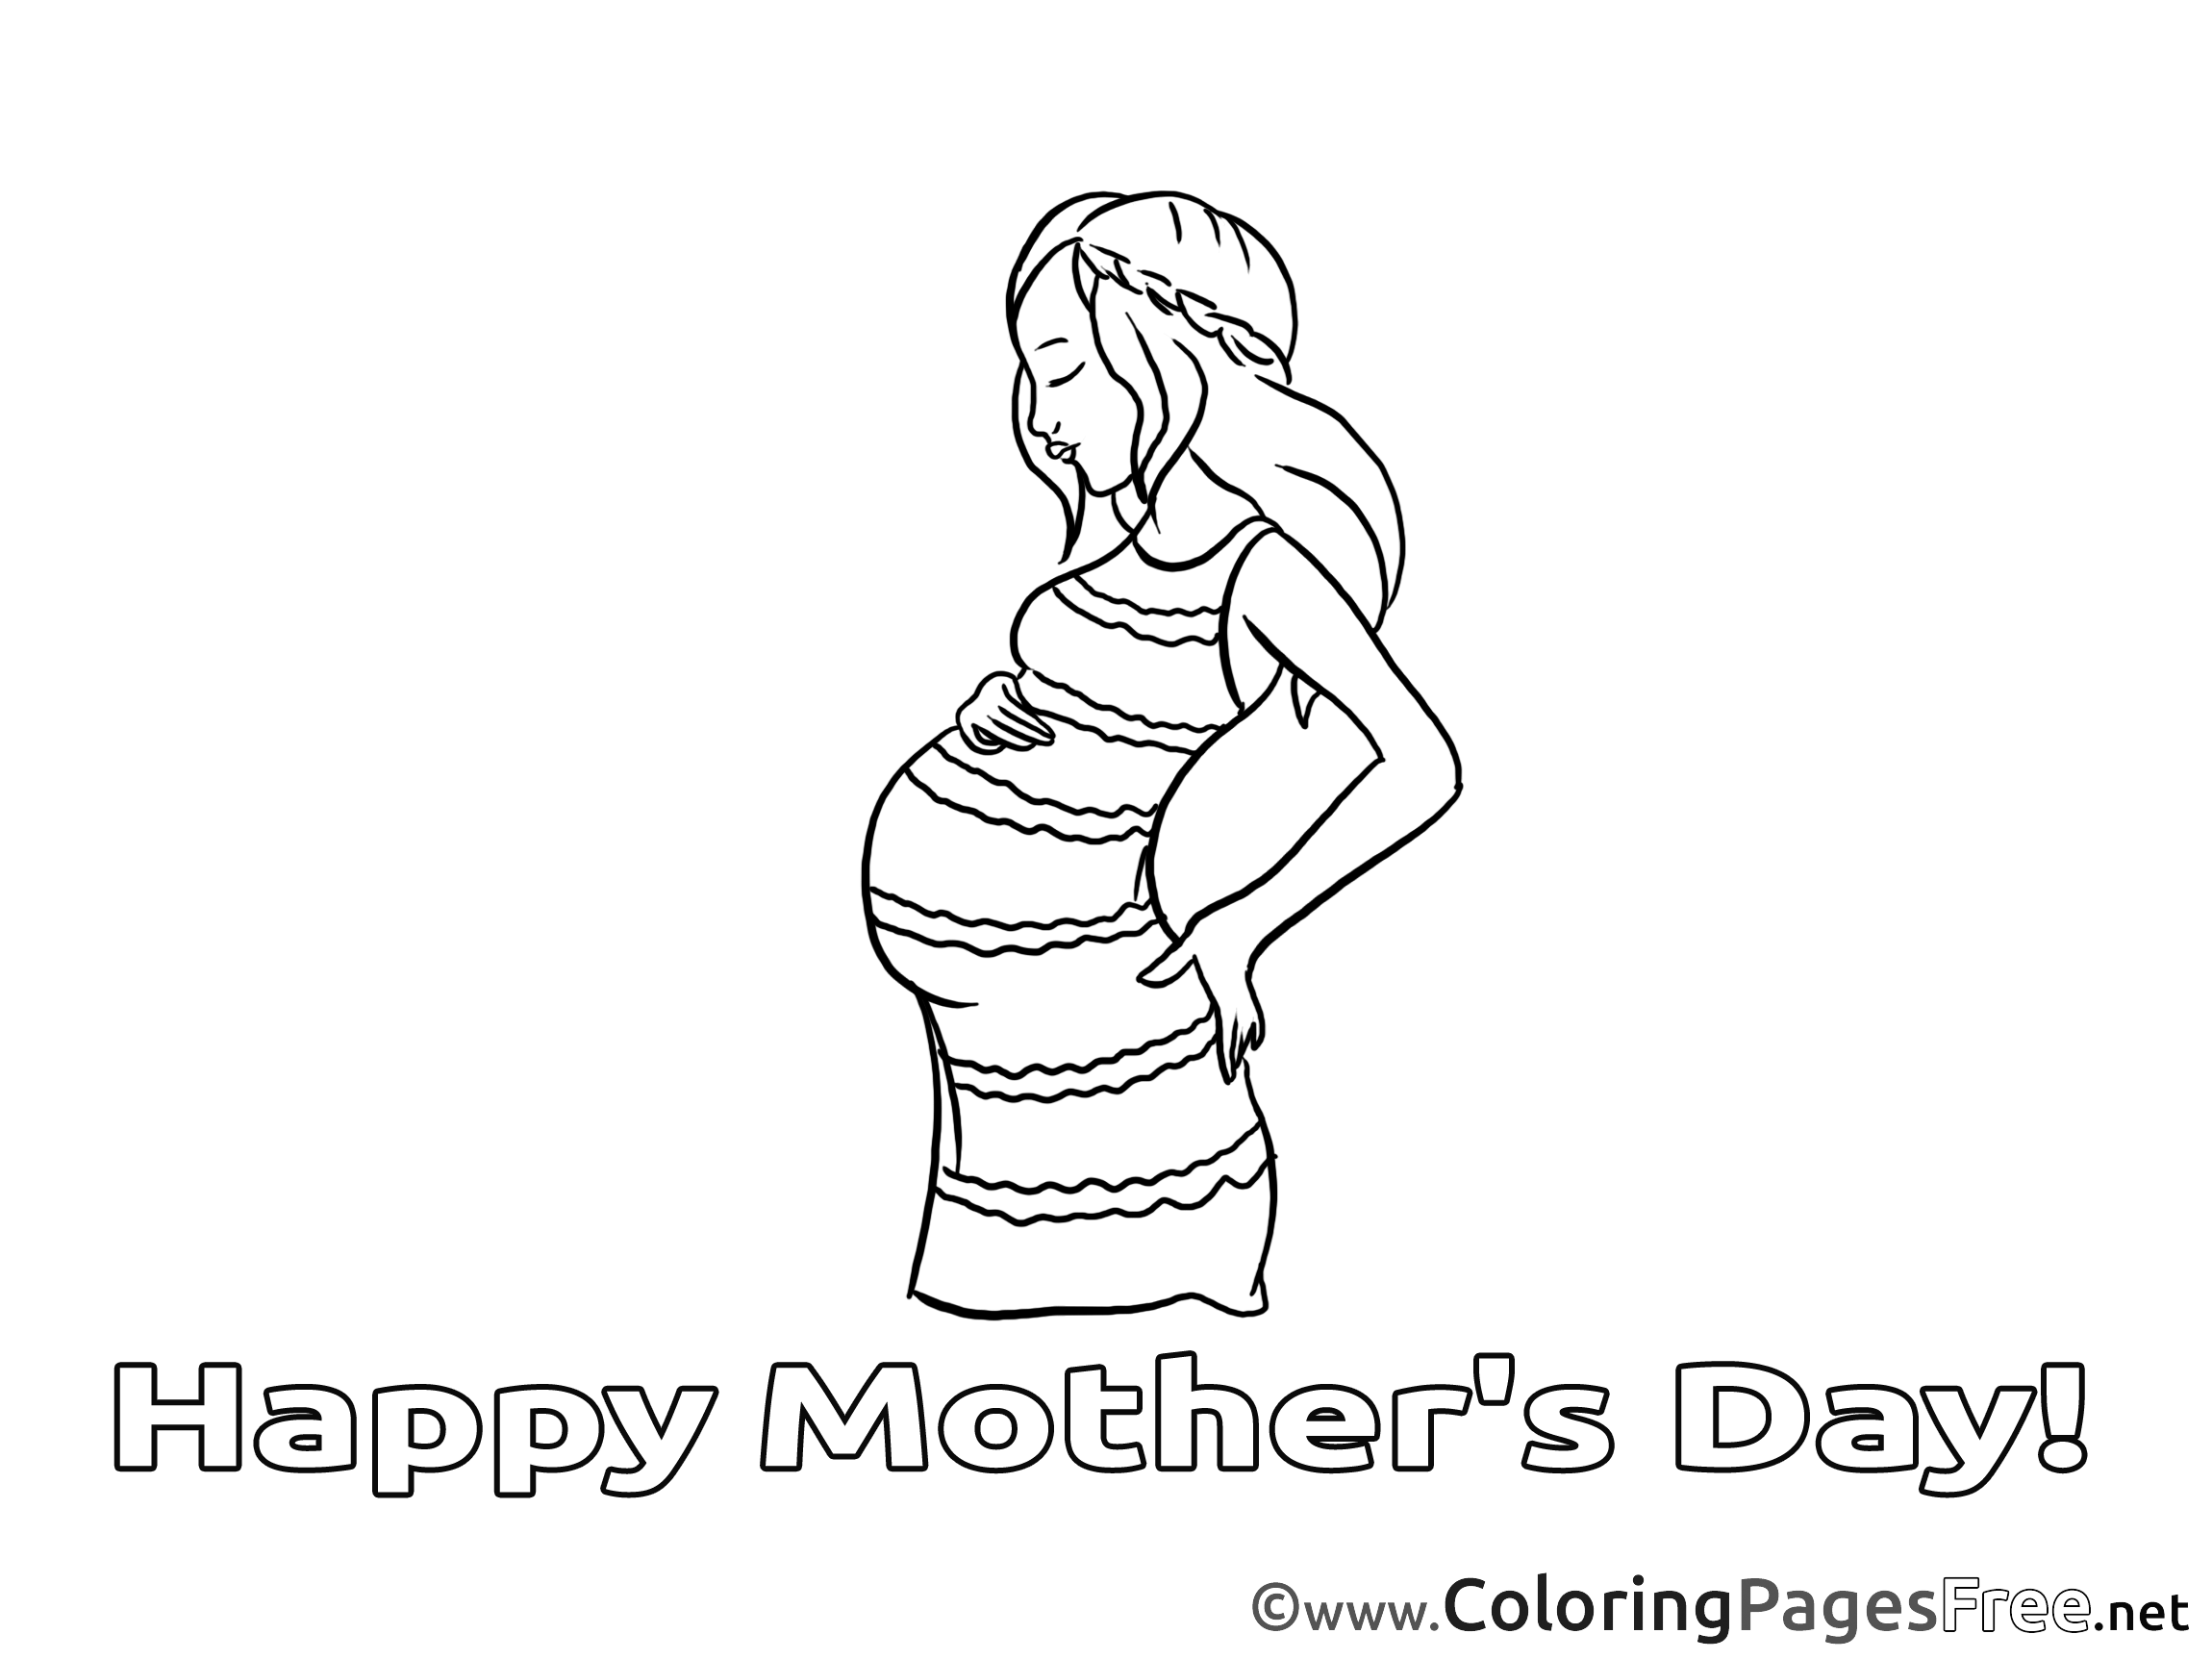 Pregnancy Mother 39 s Day Coloring